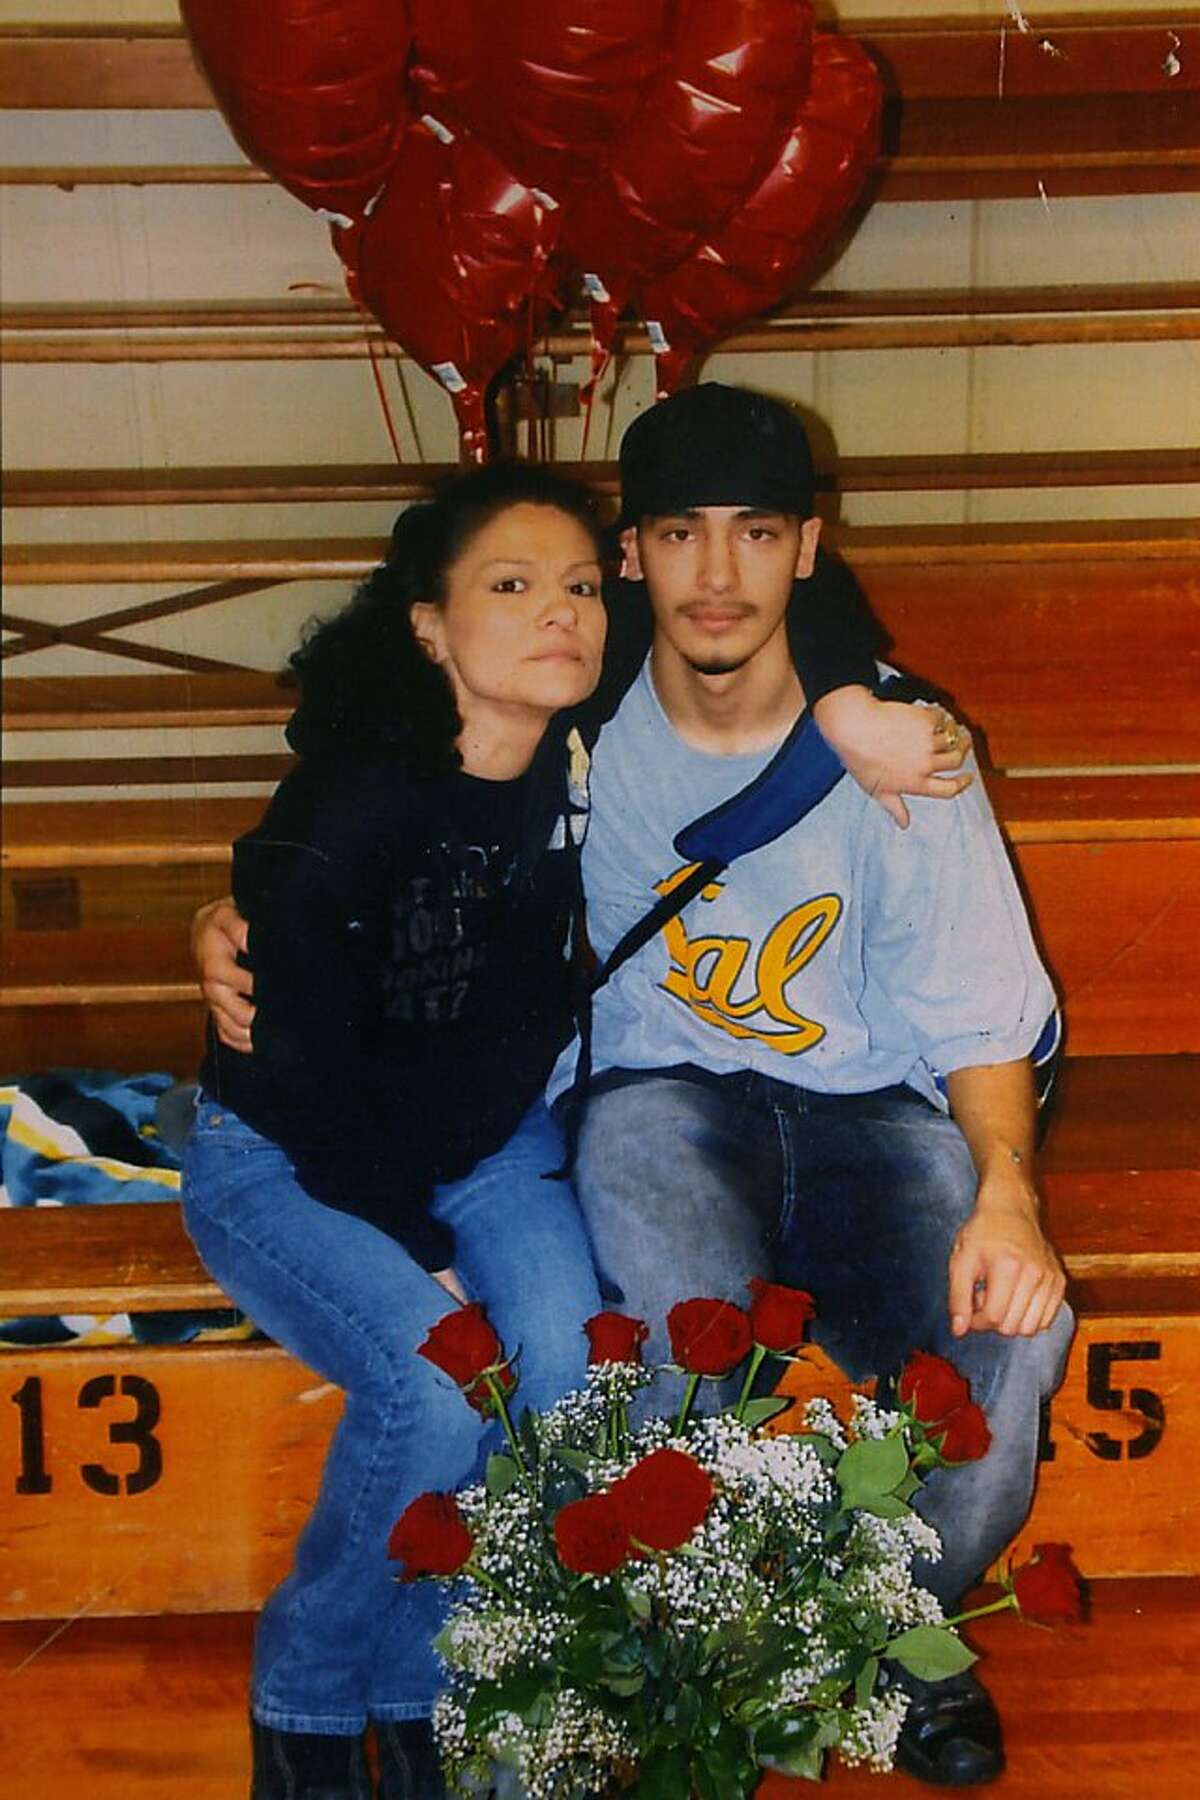 A photo of Deana Campbell (left) with her son Aaron Campbell (right) in Laytonville, Calif.